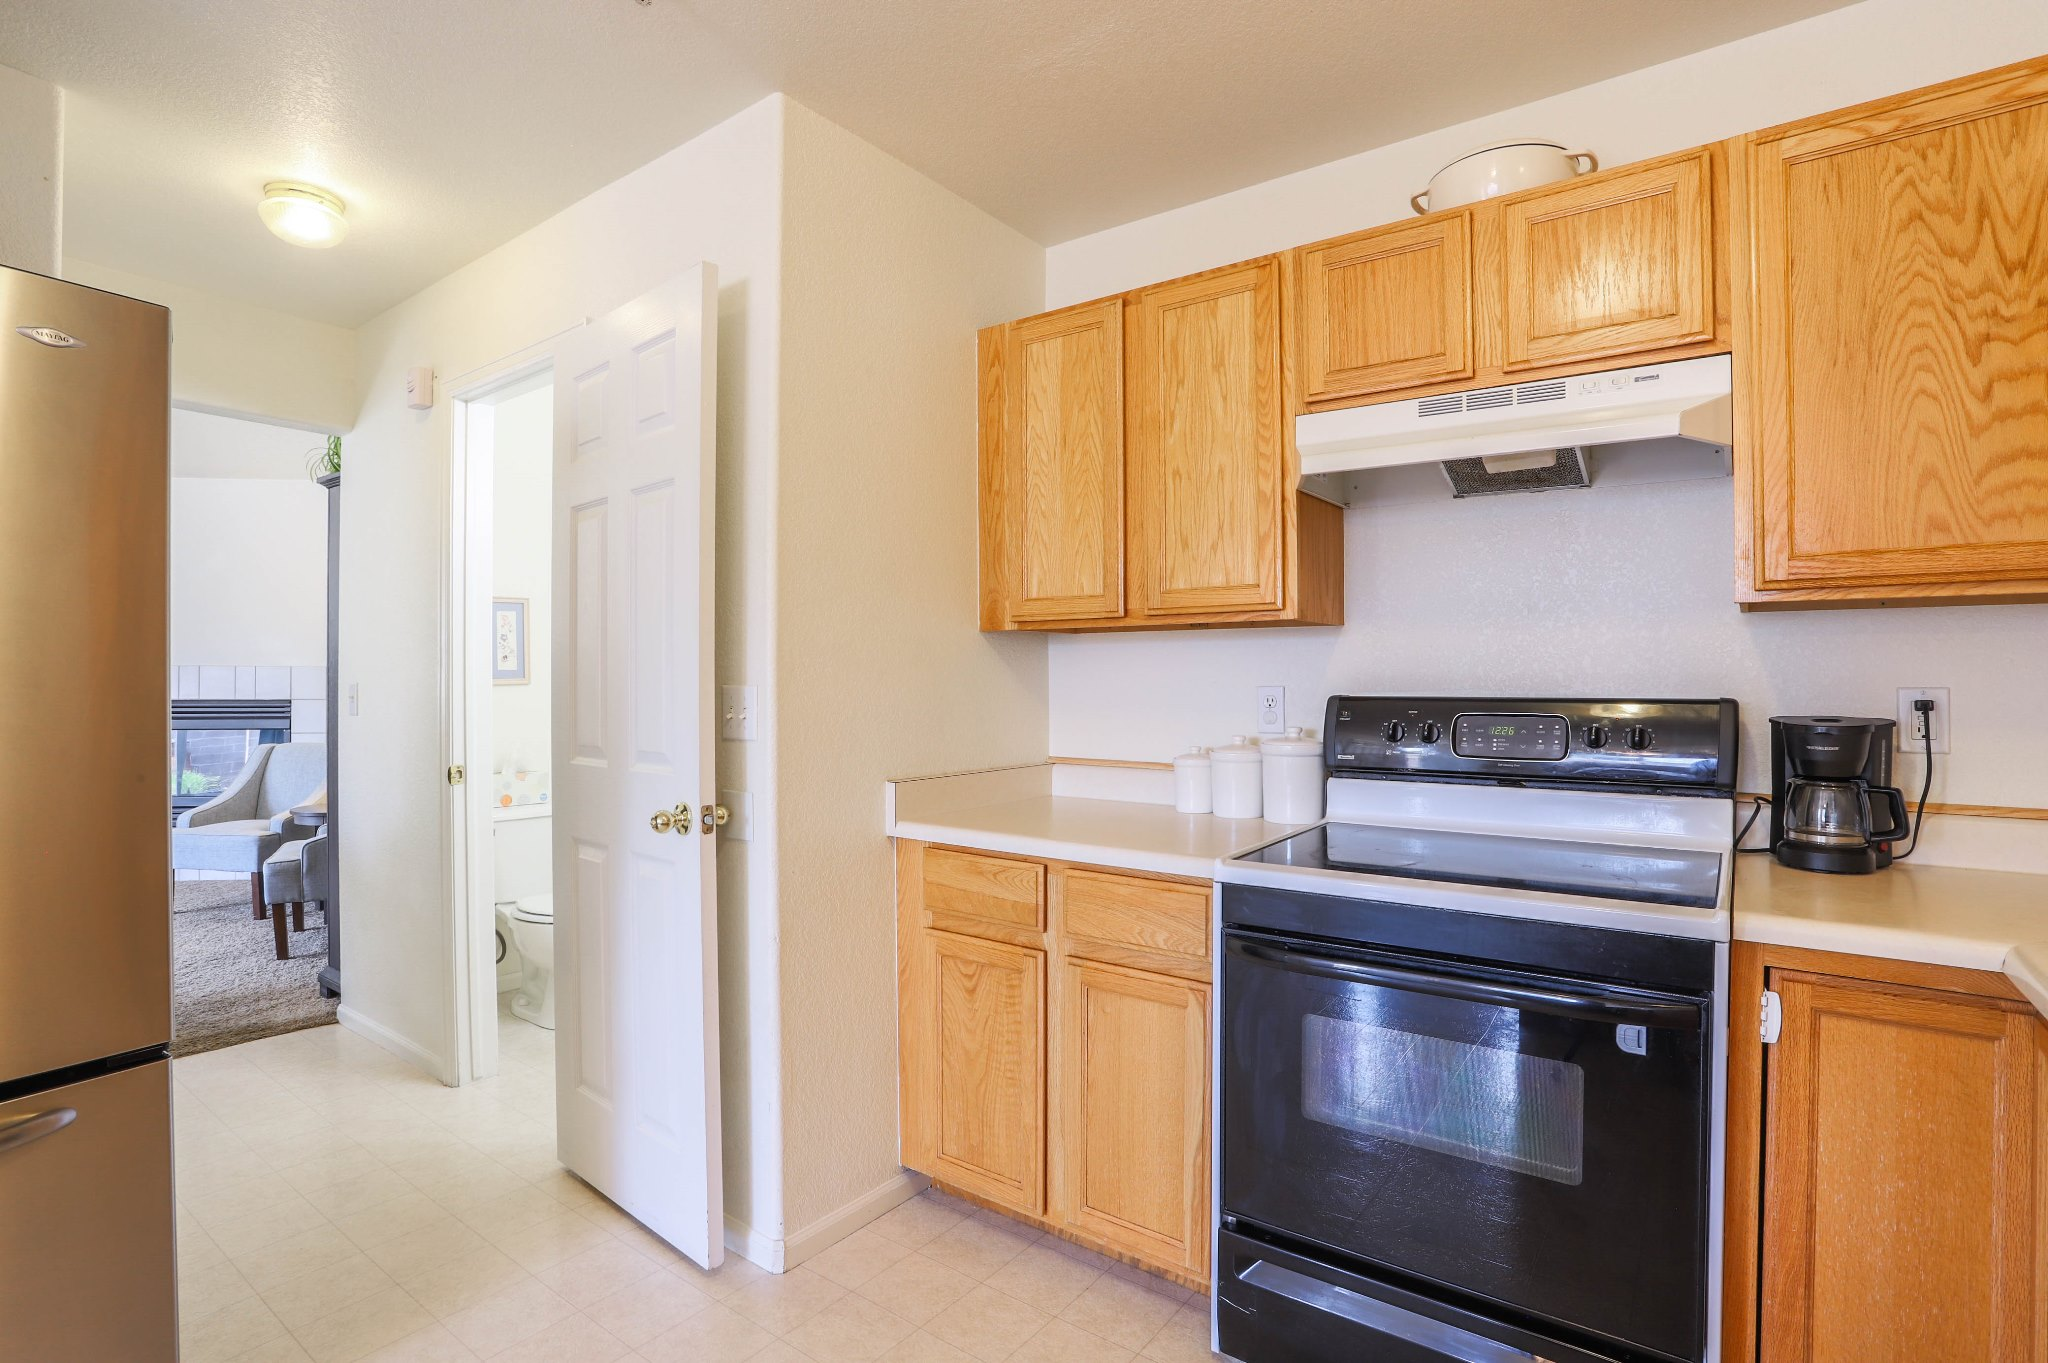 REAL ESTATE LISTING: 1601 Great Western Dr Longmont Kitchen